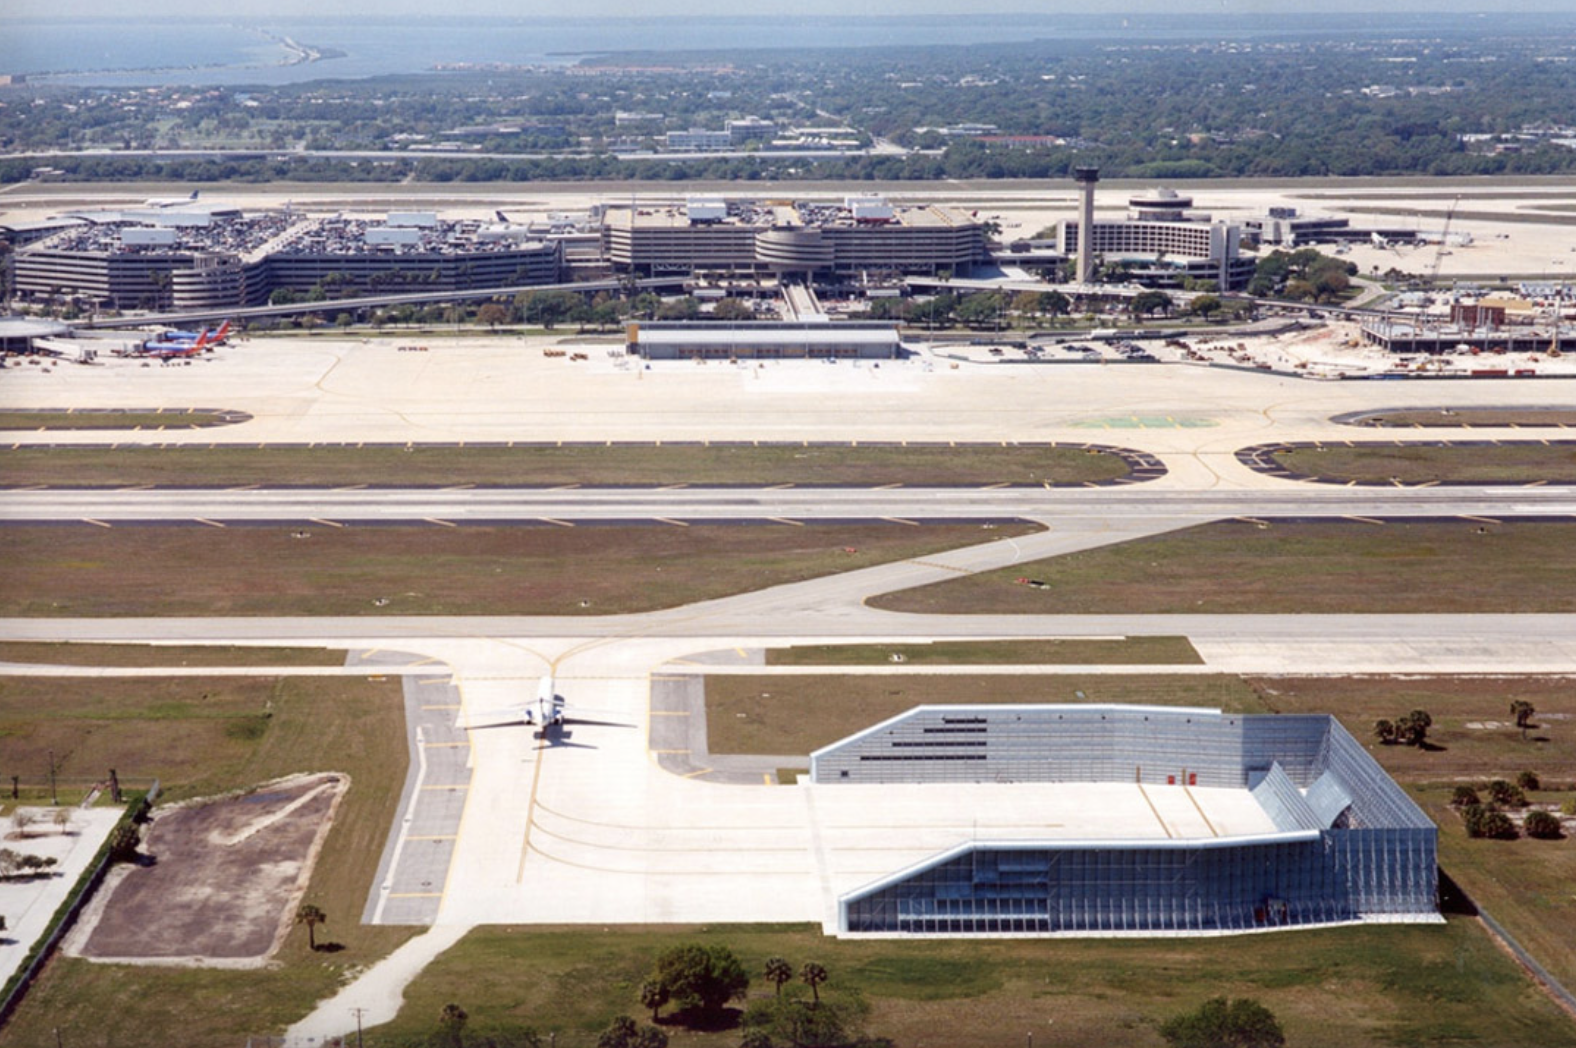 First GRE in Florida built for Tampa International Airport.